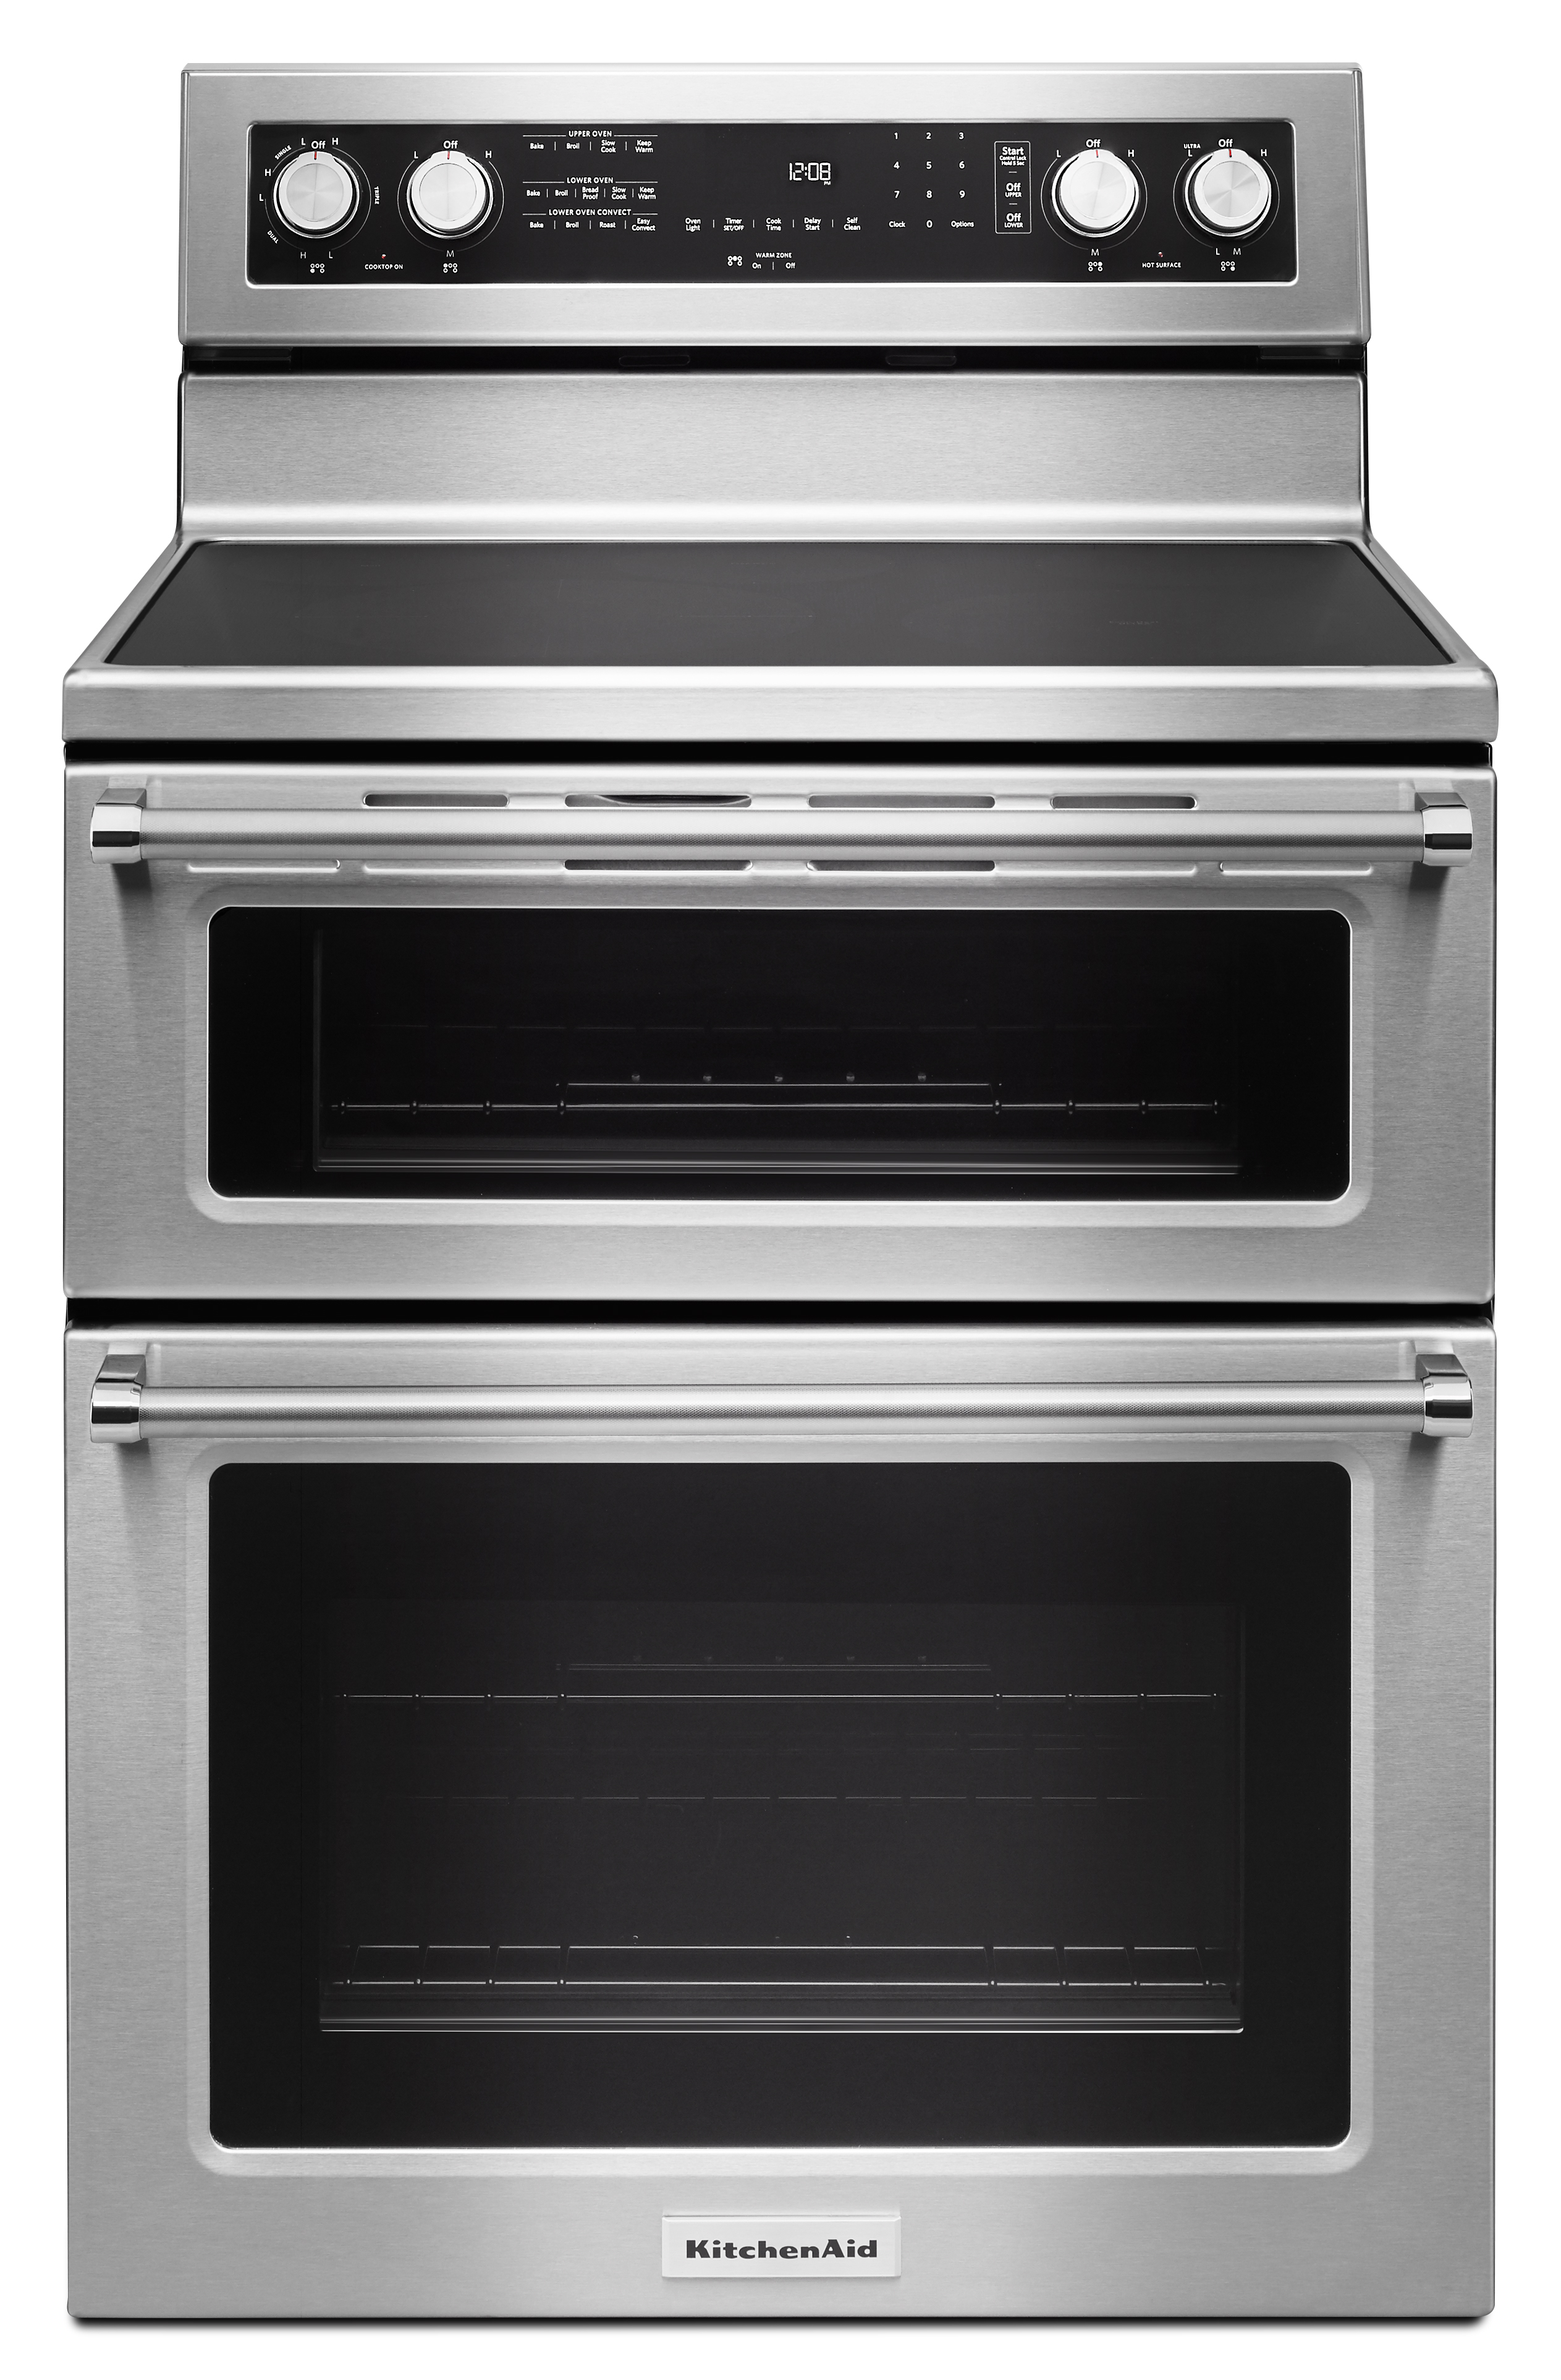 Superb KitchenAid KFED500ESS 6.7 Cu. Ft. Electric Double Oven Range   Stainless  Steel